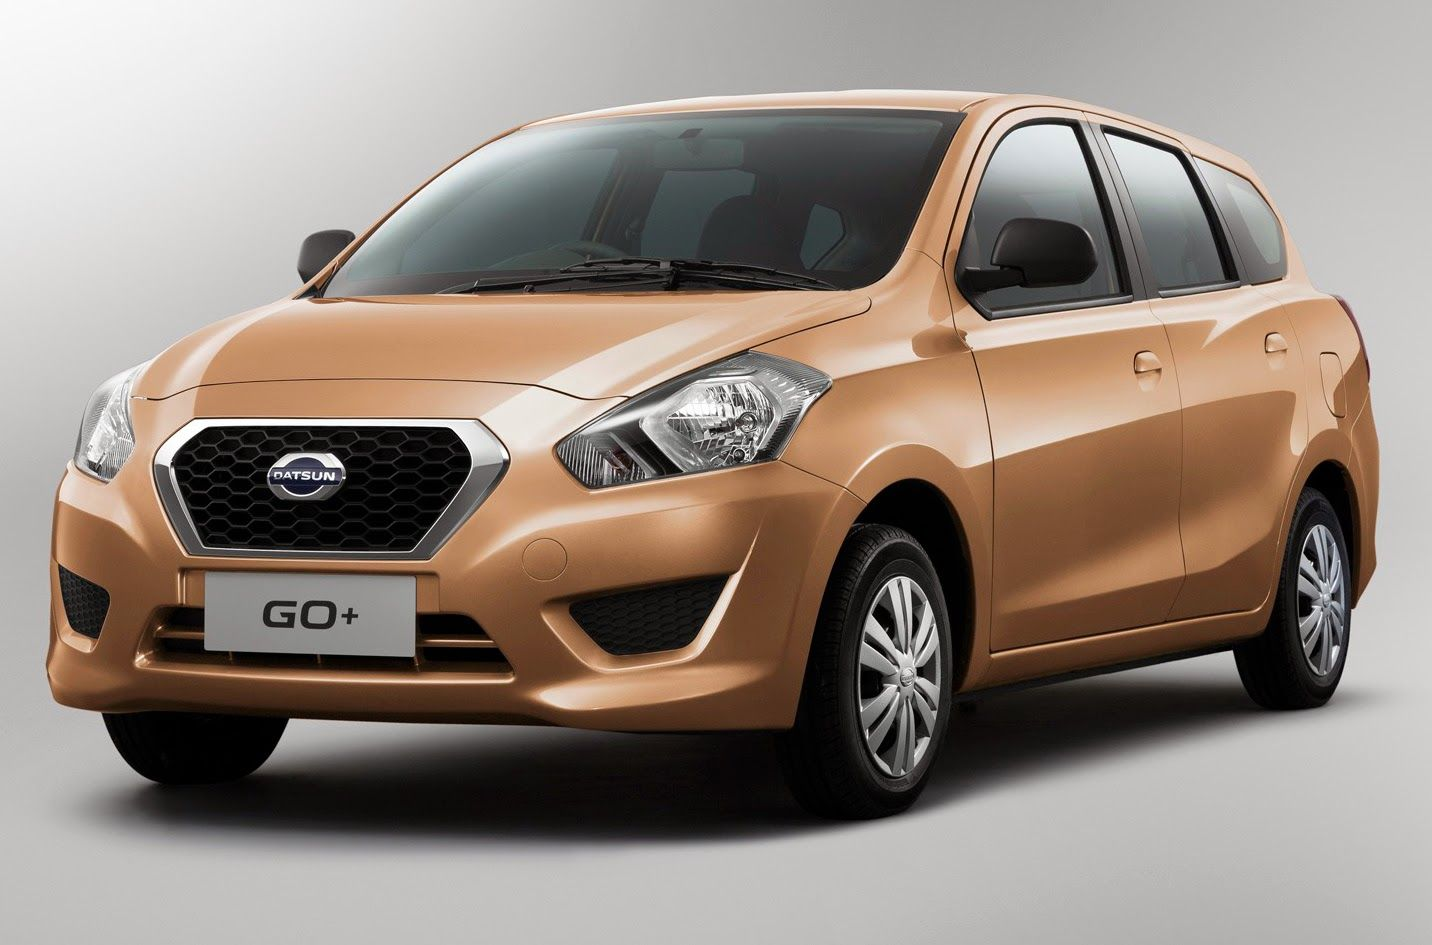 Dastun Go+ Construction Launch in January 2015 Datsun